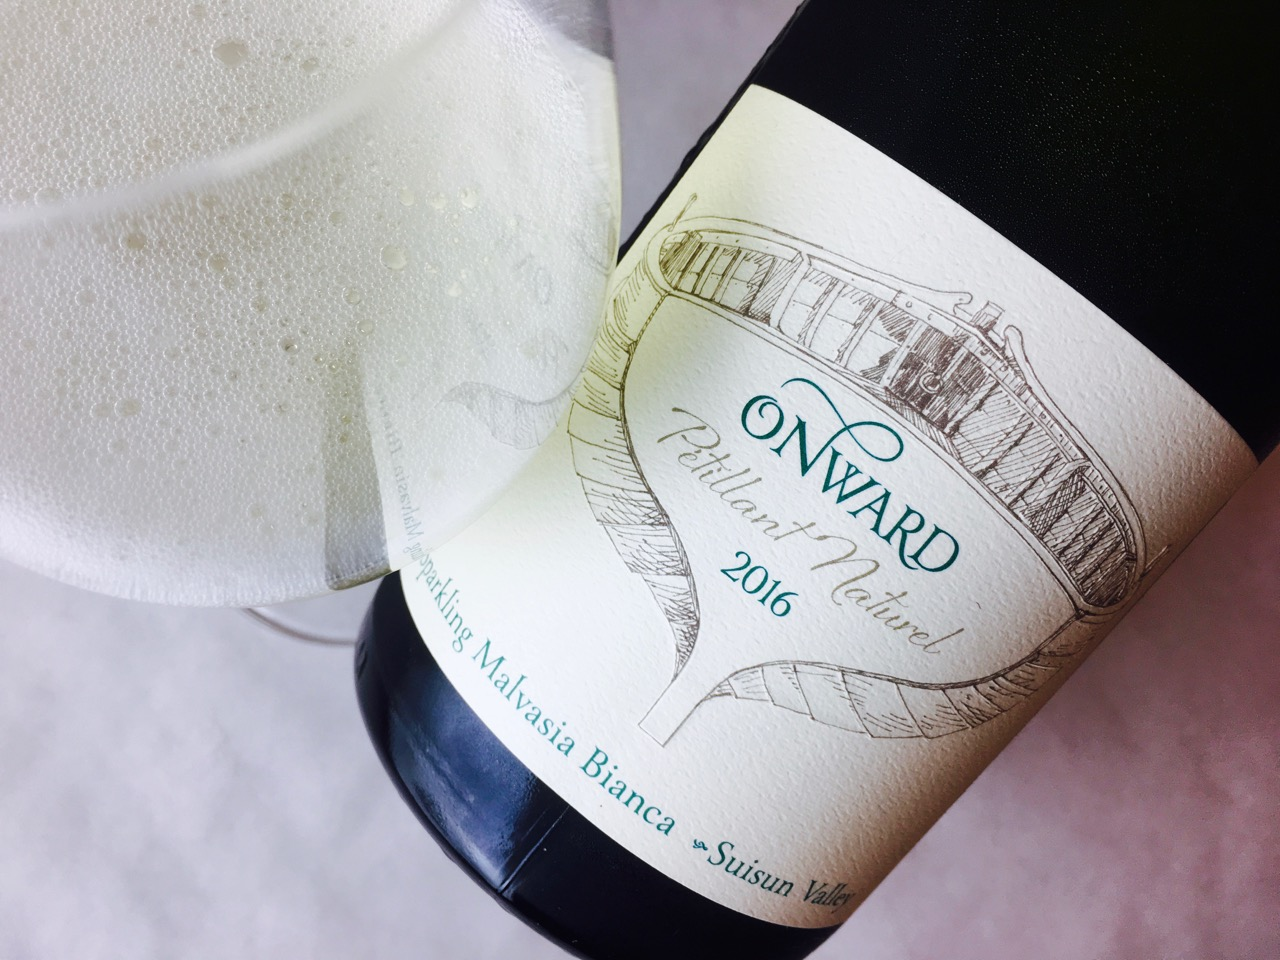 2016 Onward Malvasia Pétillant Naturel Capp Inn Ranch Suisun Valley